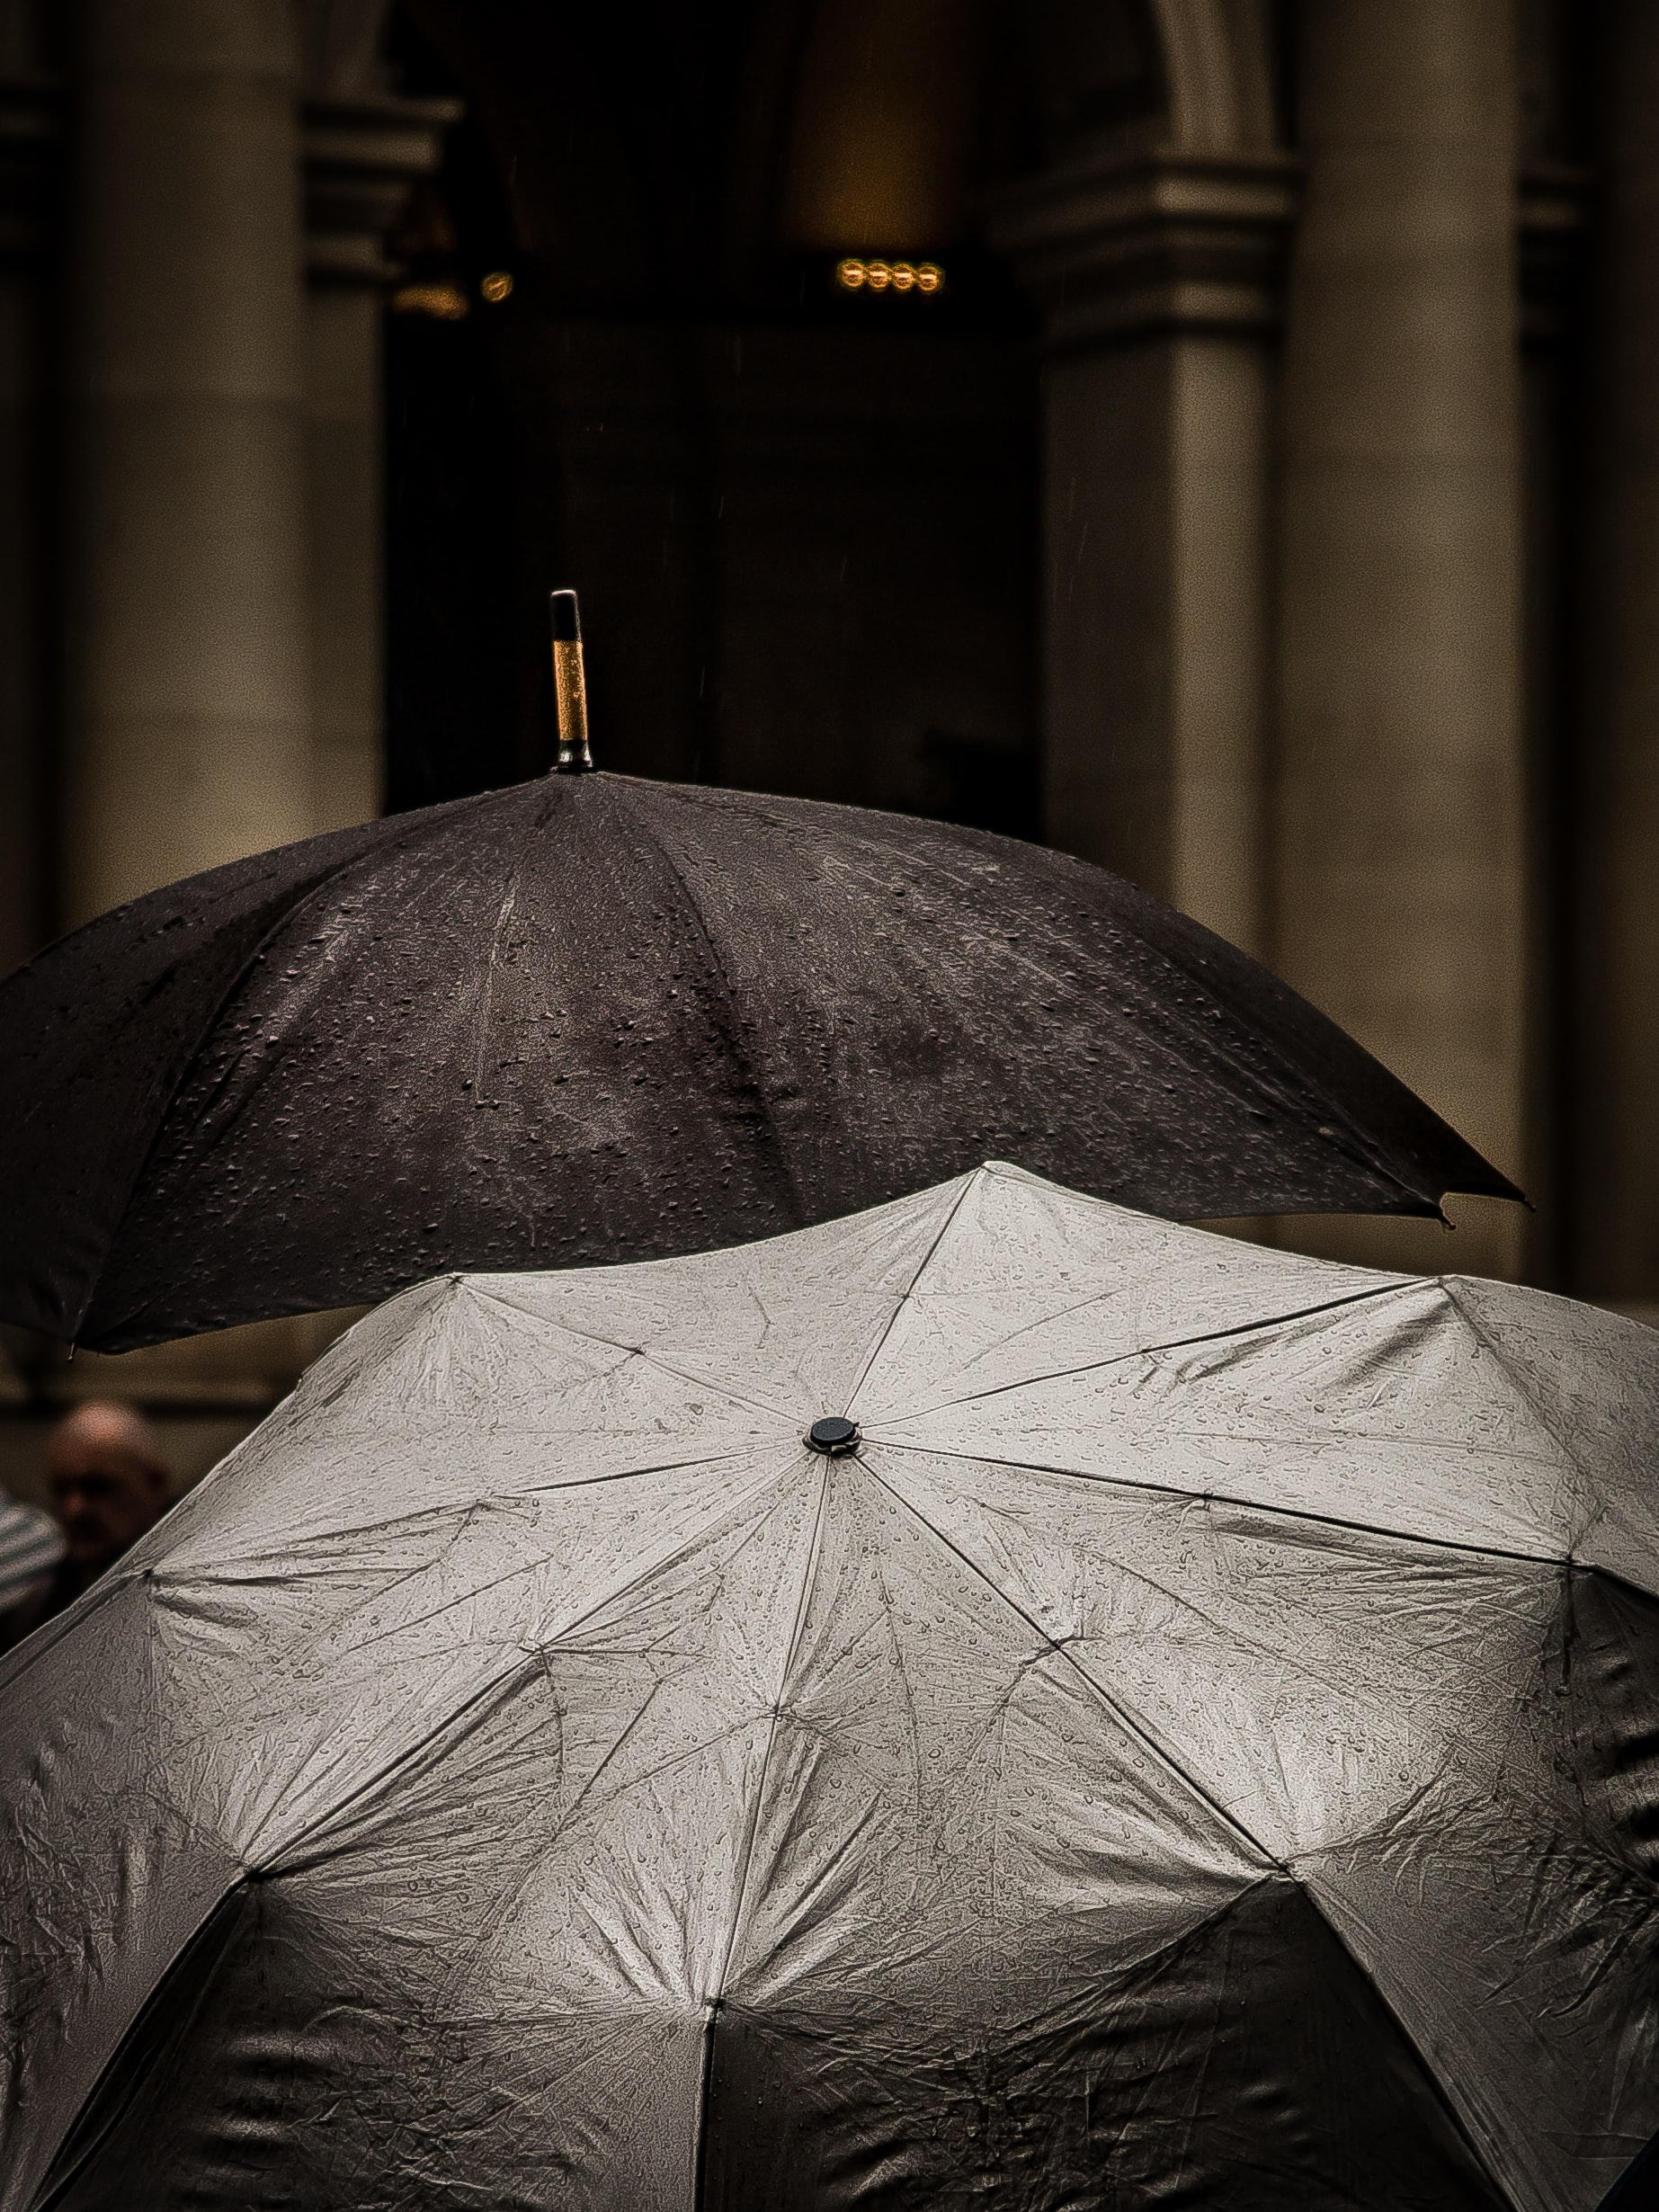 A black and a silver reflective umbrella during the rain on Bourke Street